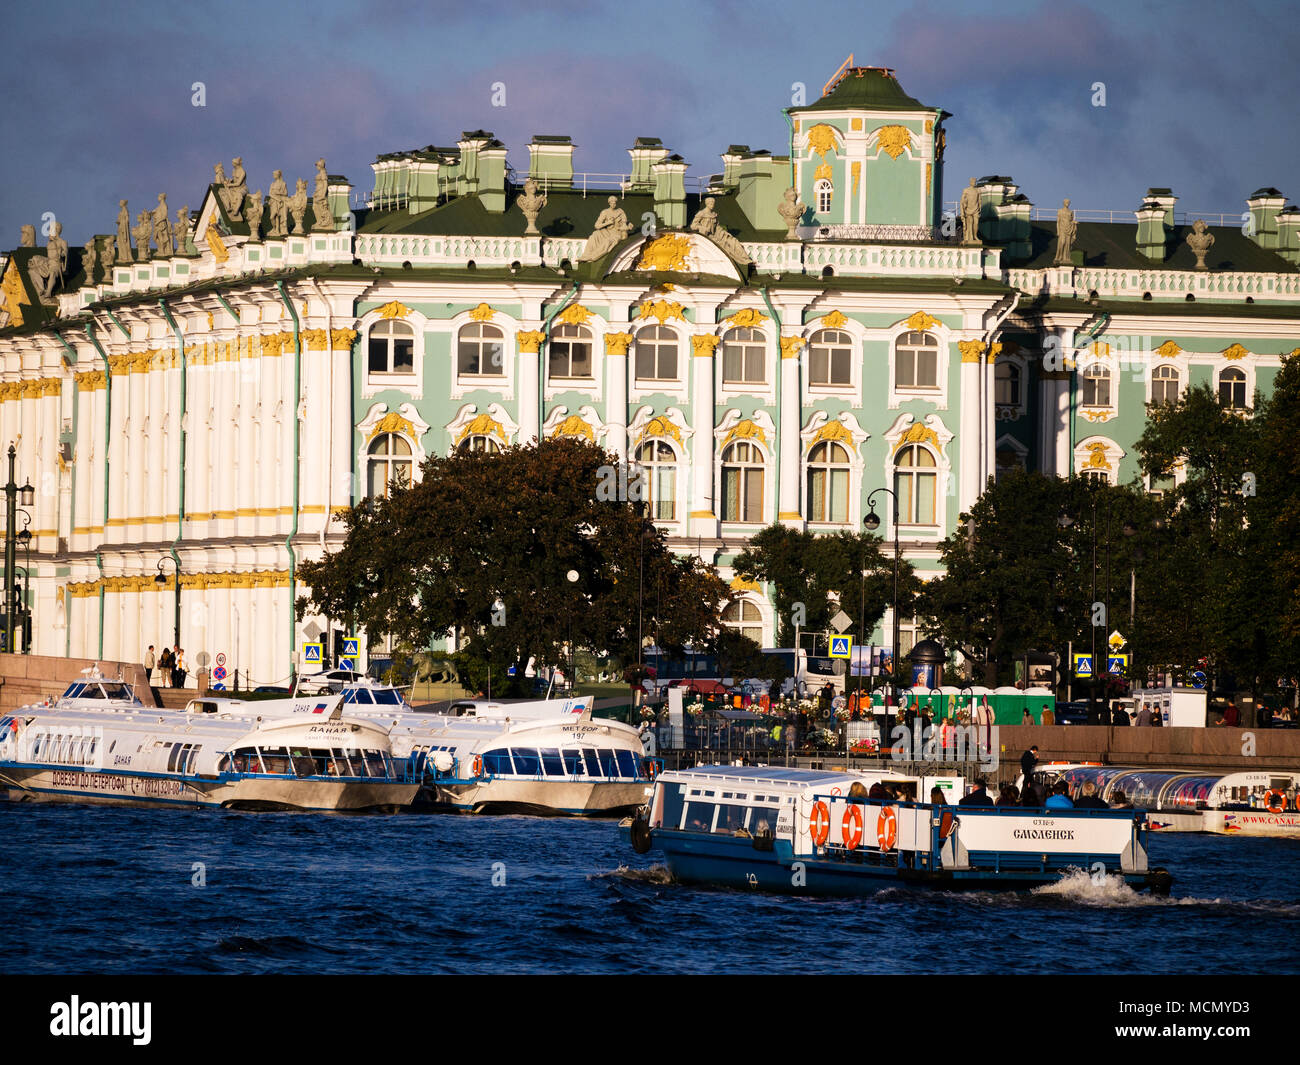 St. Petersburg, Russia: Winter Palace seen from the Neva River - Stock Image